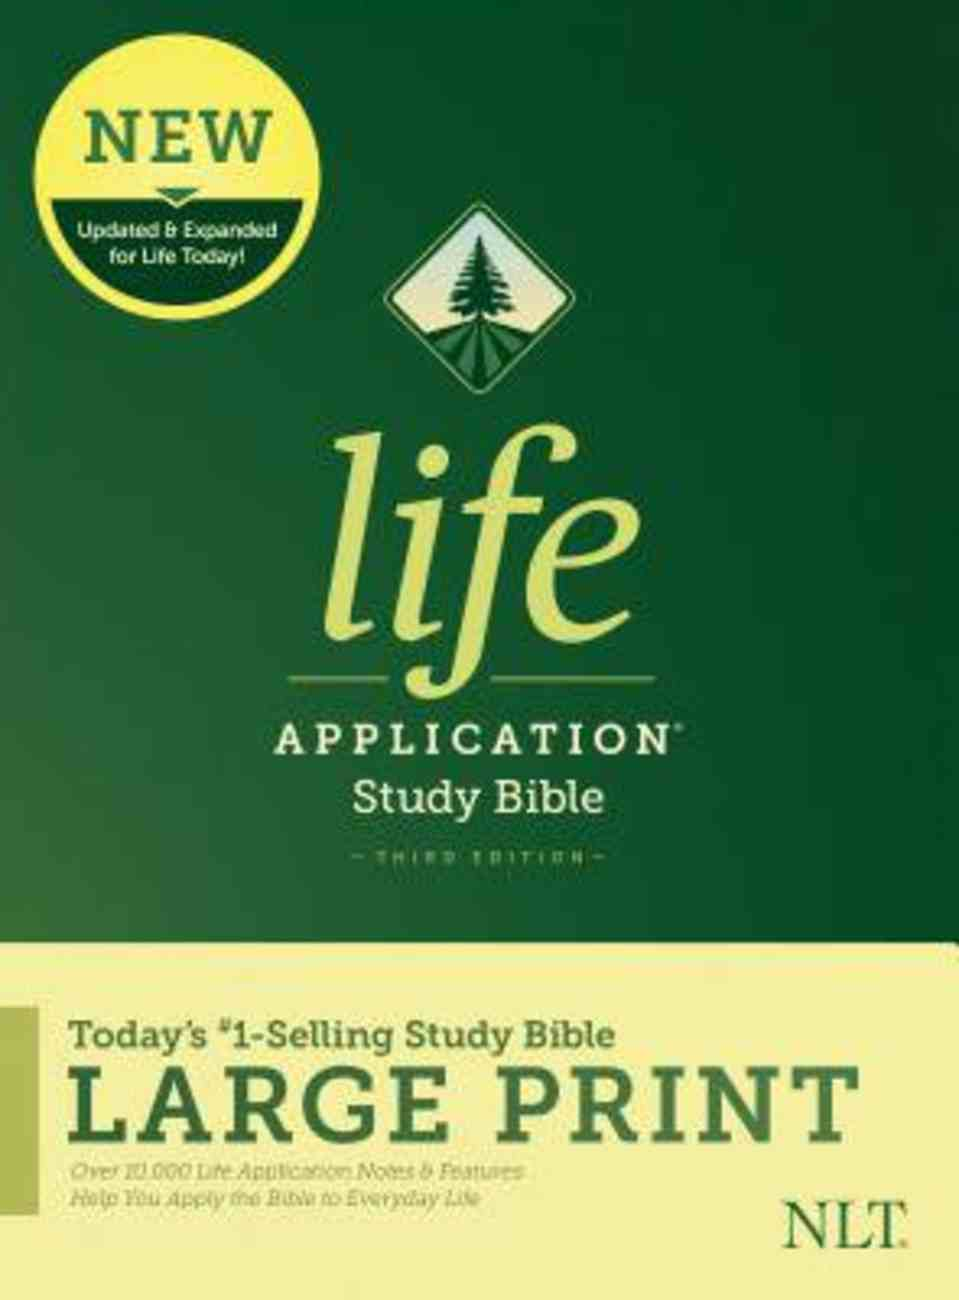 NLT Life Application Study Bible Third Edition Large Print (Black Letter Edition) Hardback